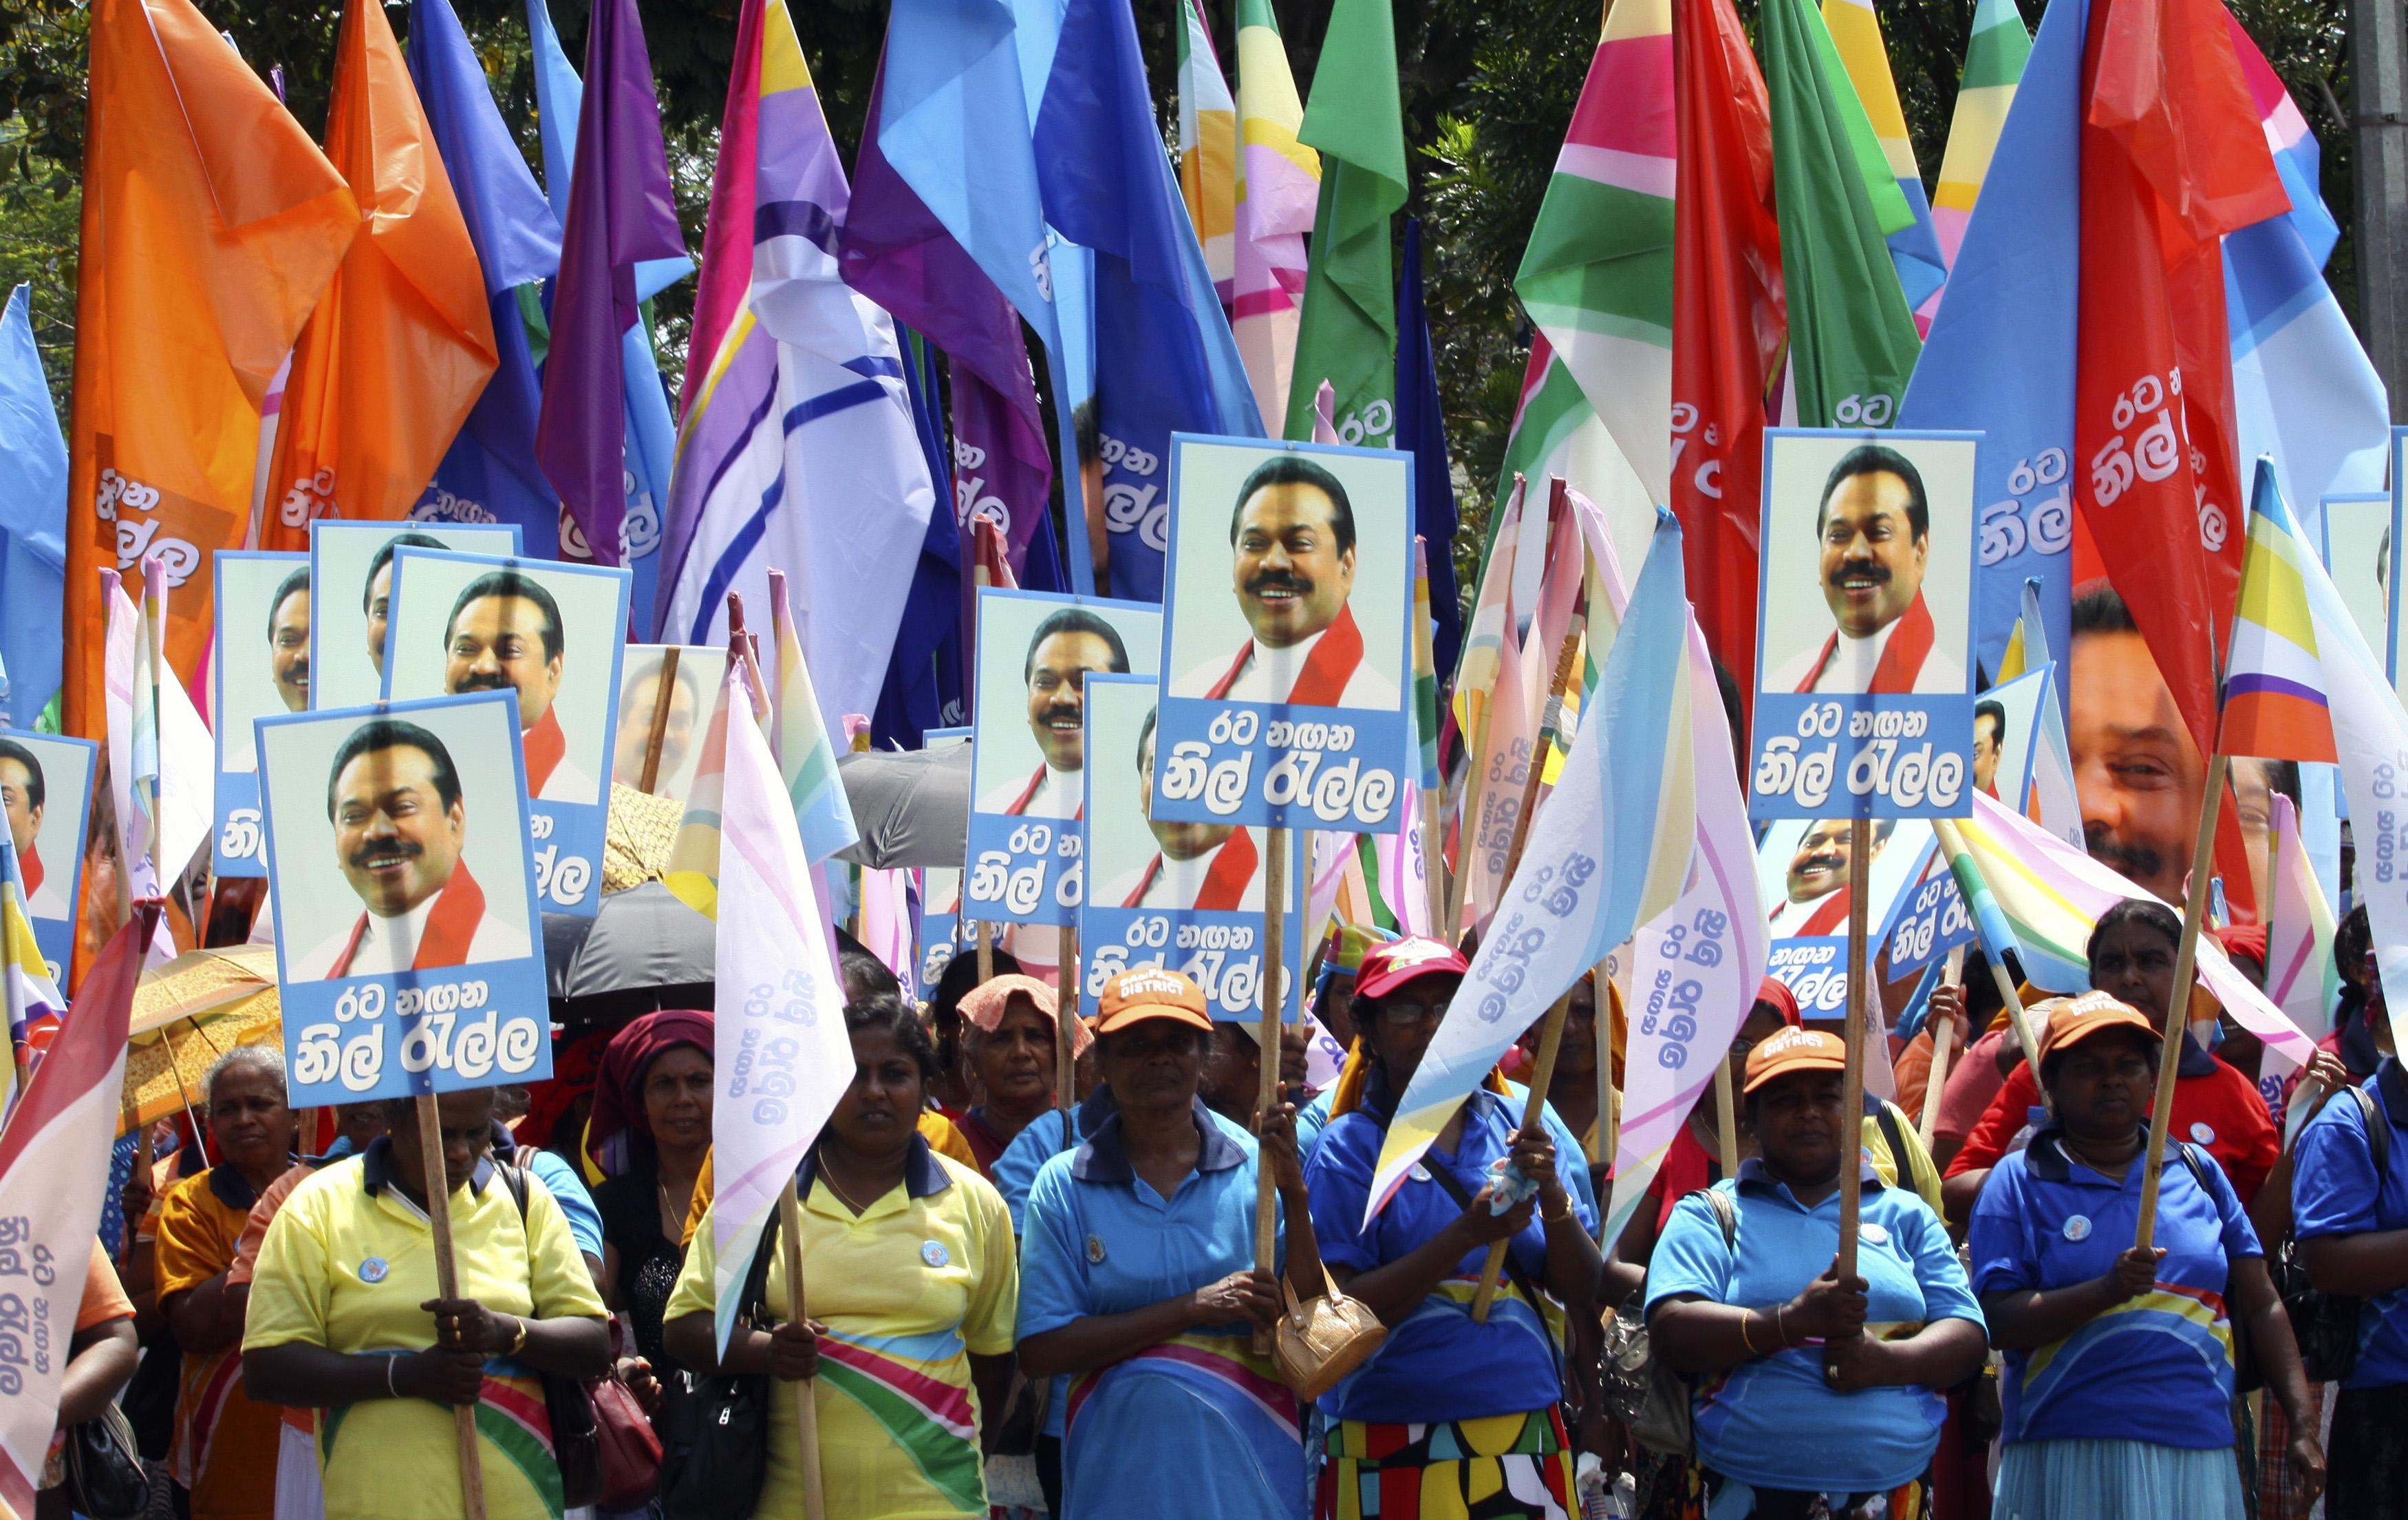 May Day Sri Lanka